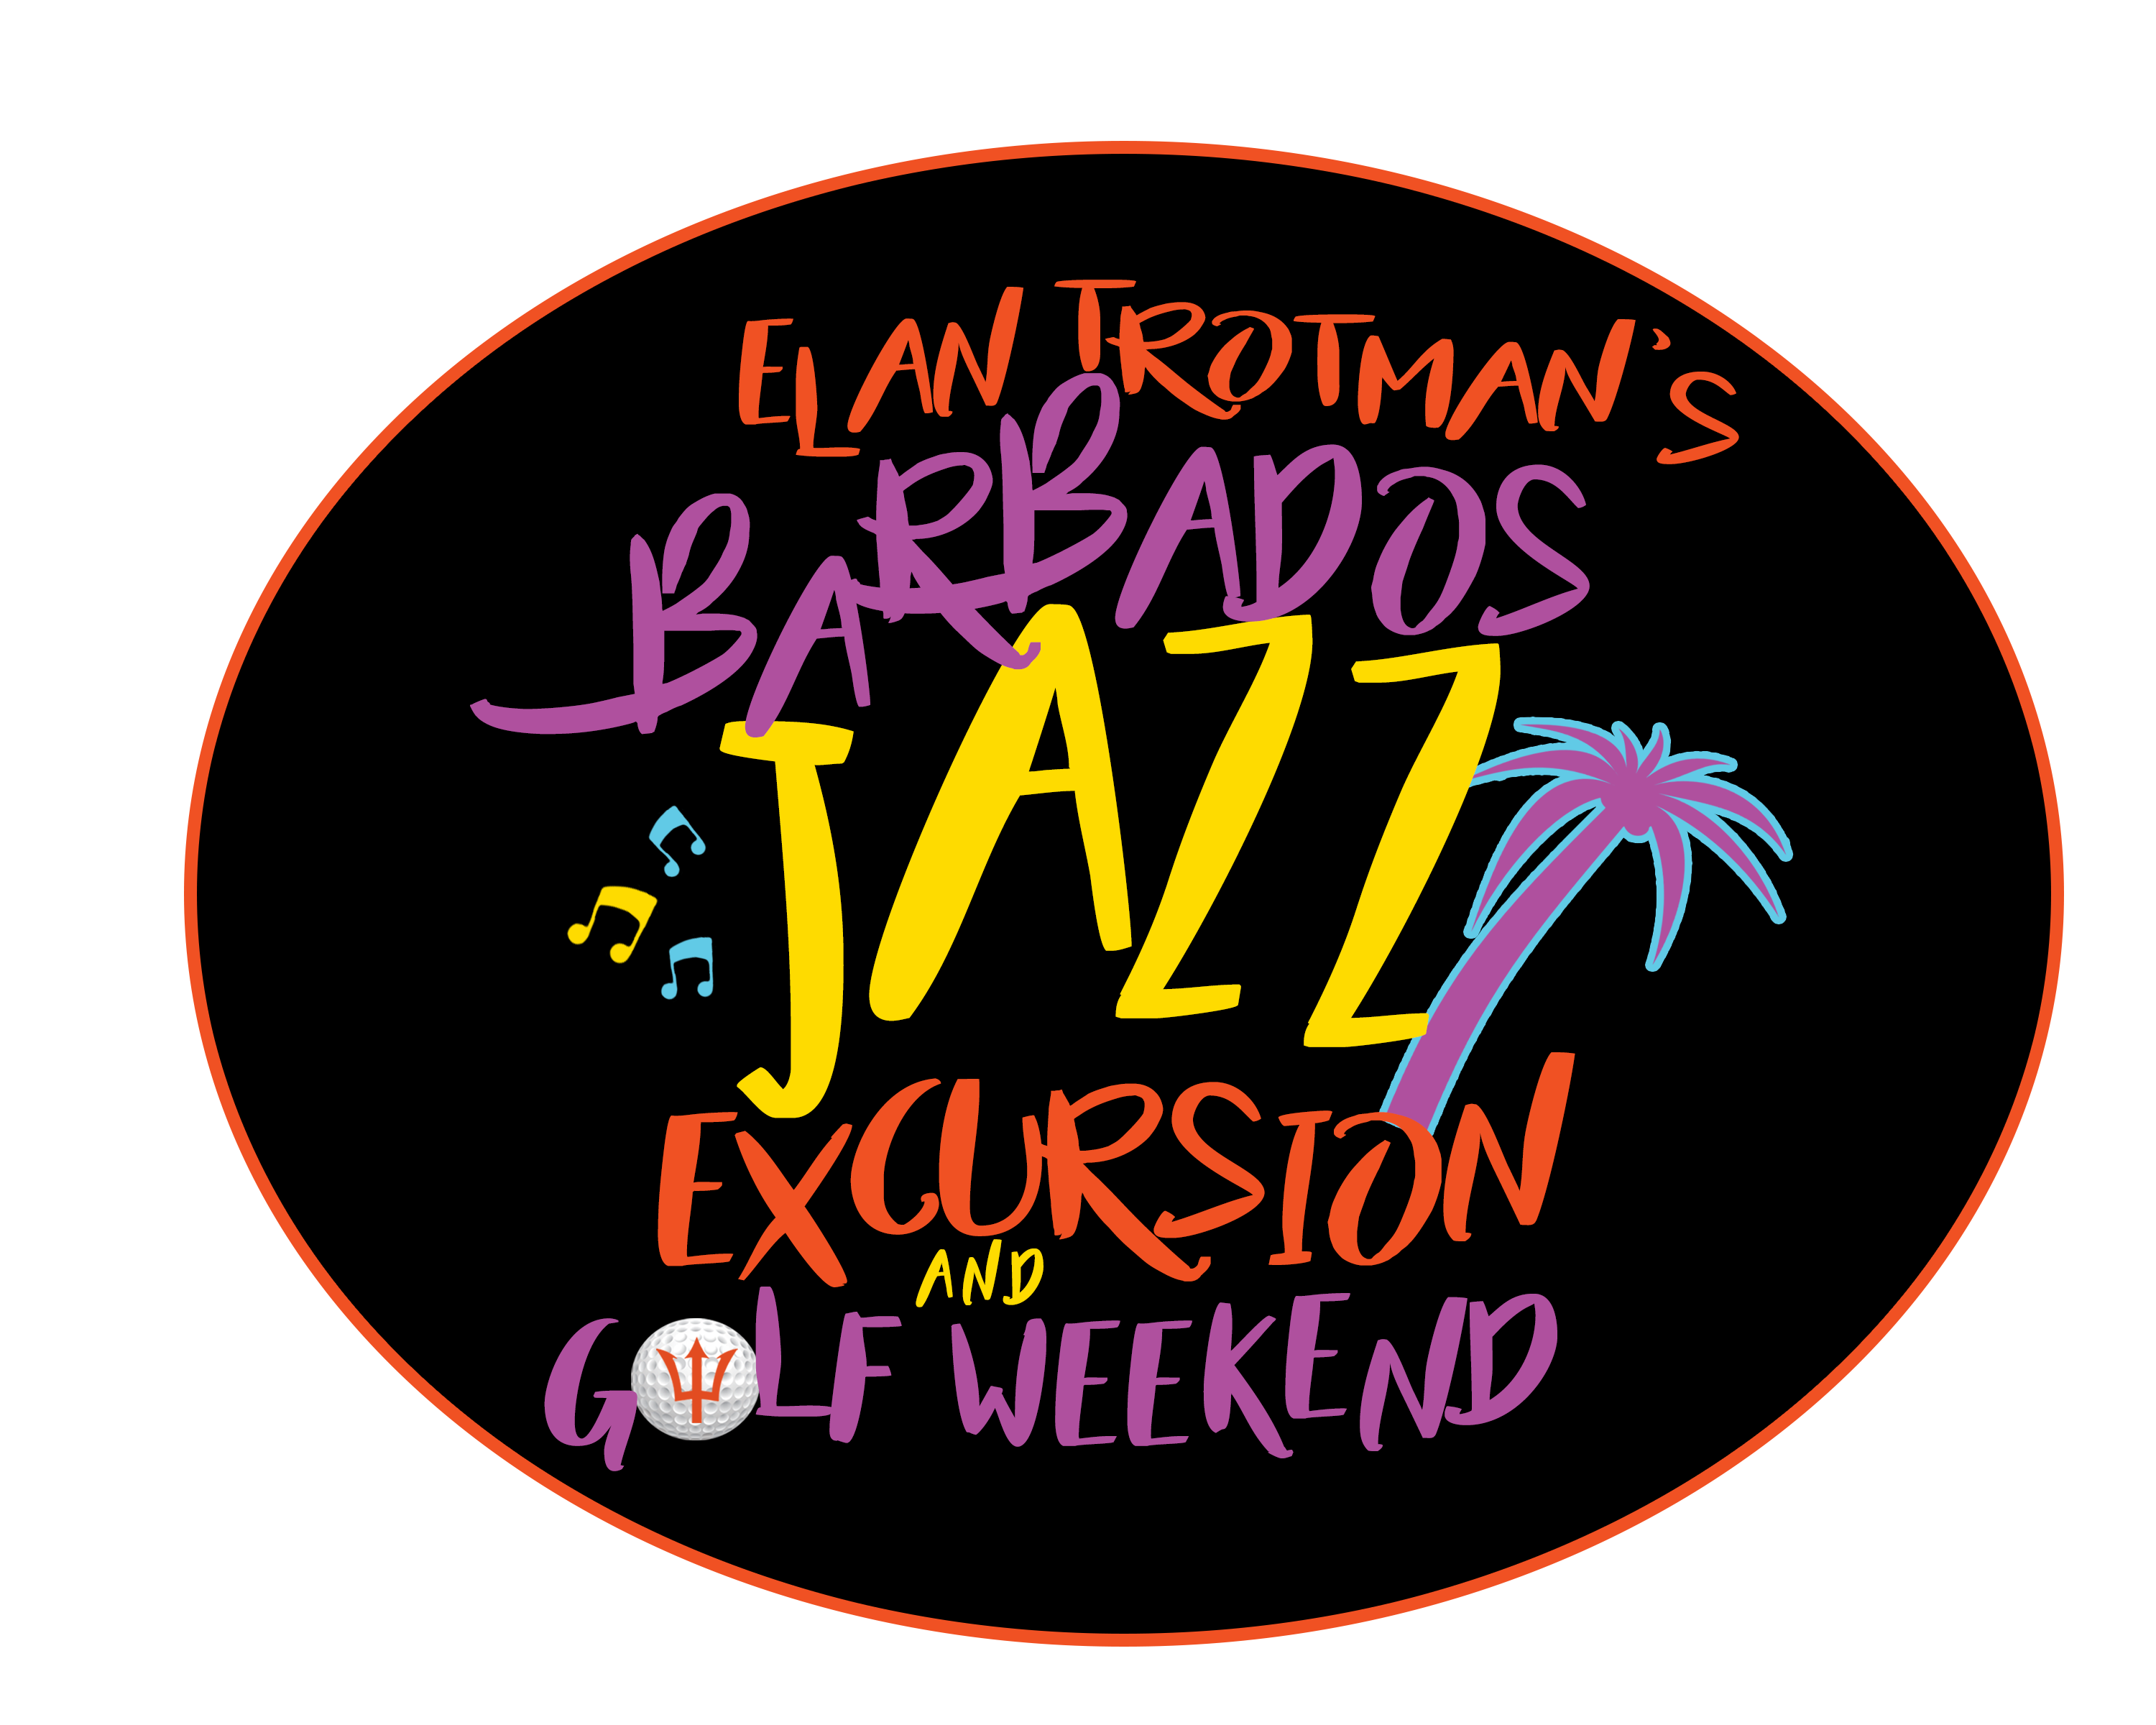 Elan Trotman's Barbados Jazz Excursion 2020